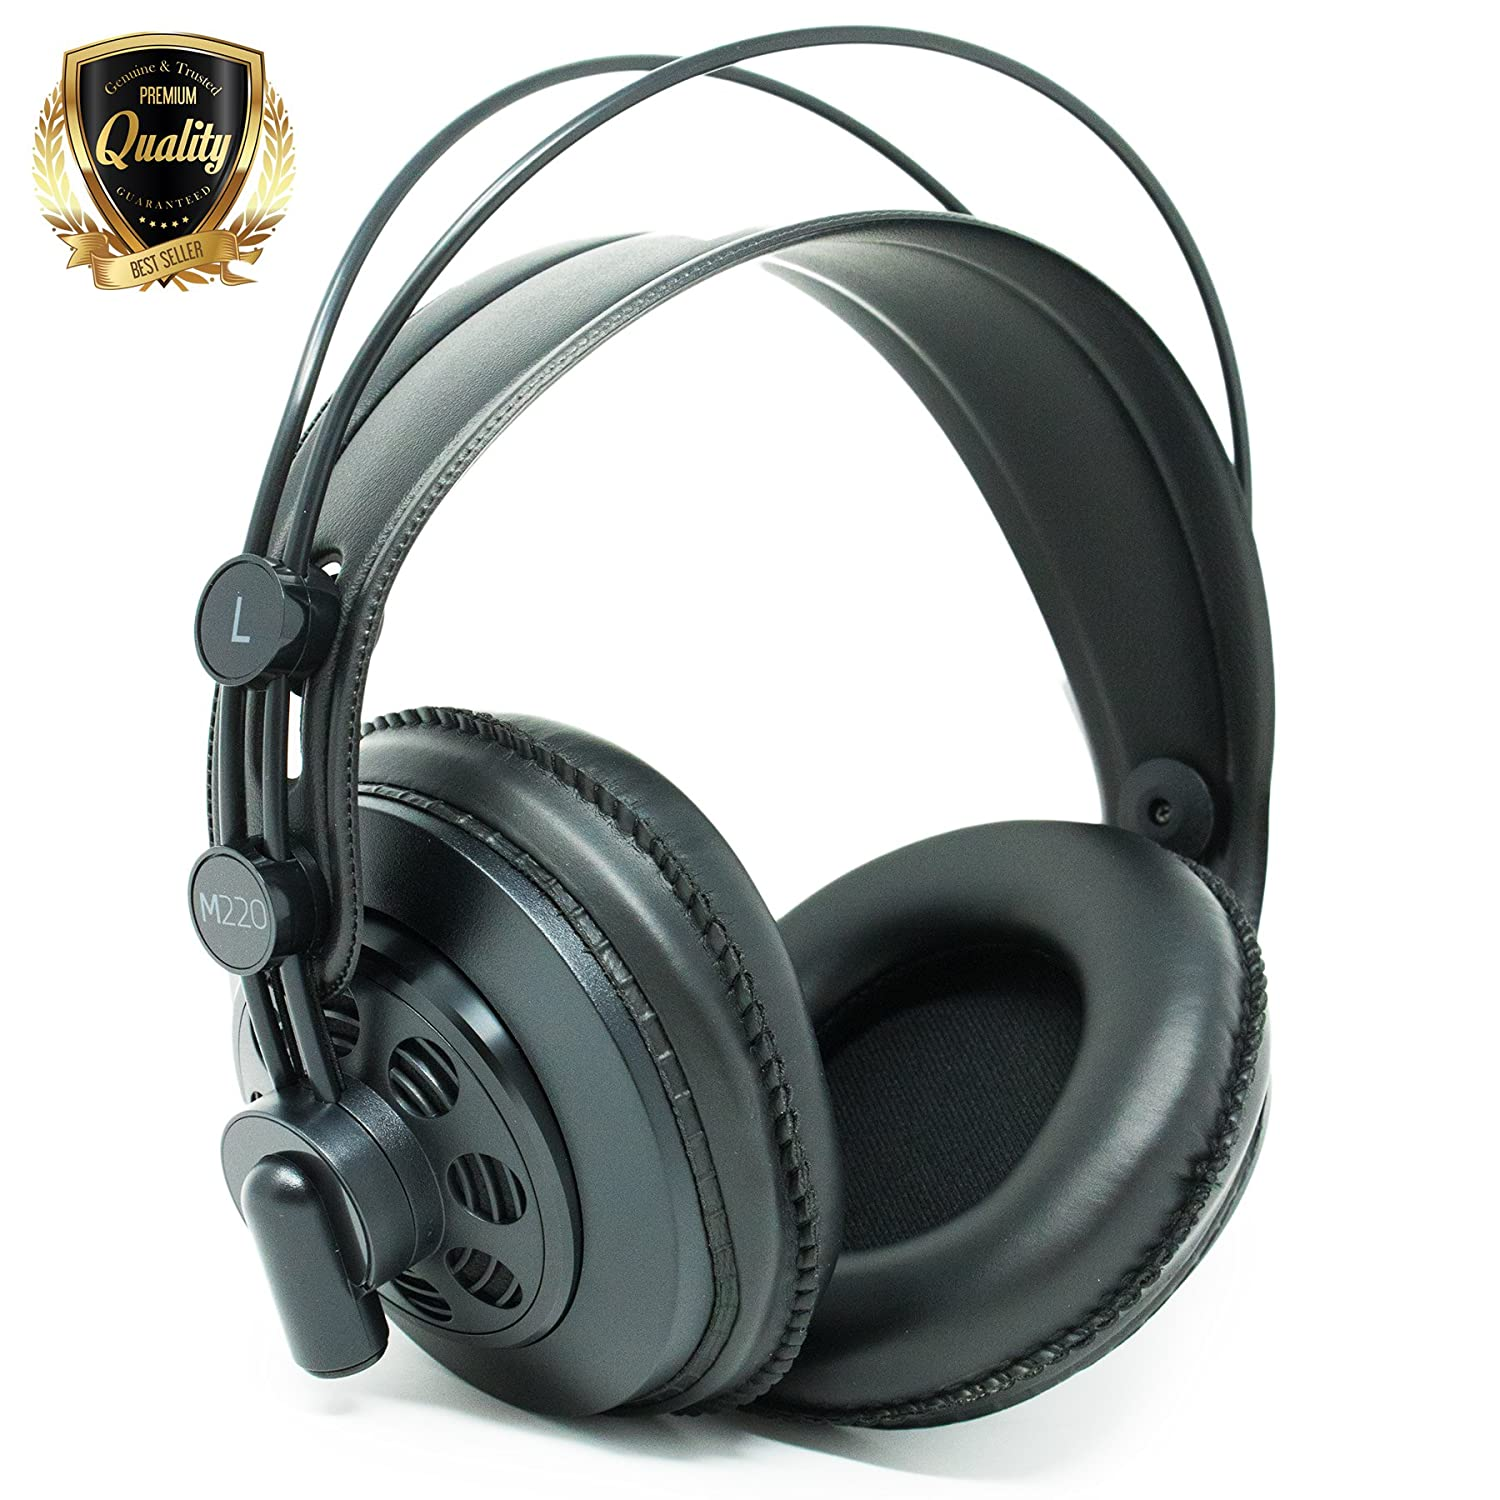 AKG M220 Pro Stylist Professional Large Diaphragm DJ Semi-Open High Definition Over-Ear Studio Headphones - Black 81Jcui-1khL